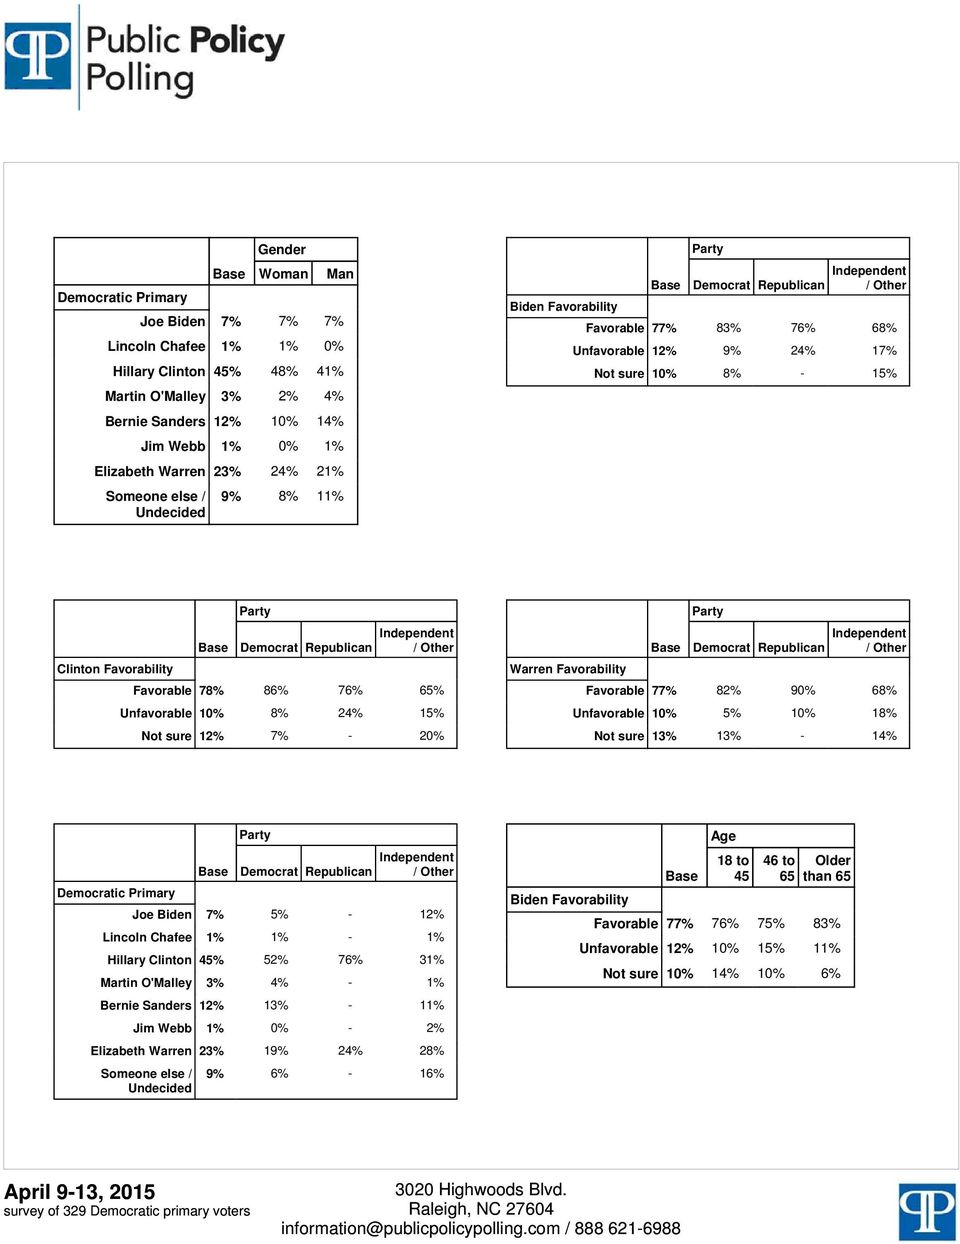 7% - 20% Democrat Republican Warren Favorability Favorable 77% 82% 90% 68% 10% 5% 10% 18% 13% 13% - 14% Democrat Republican Democratic Primary Joe Biden 7% 5% - 12% Lincoln Chafee Hillary Clinton %